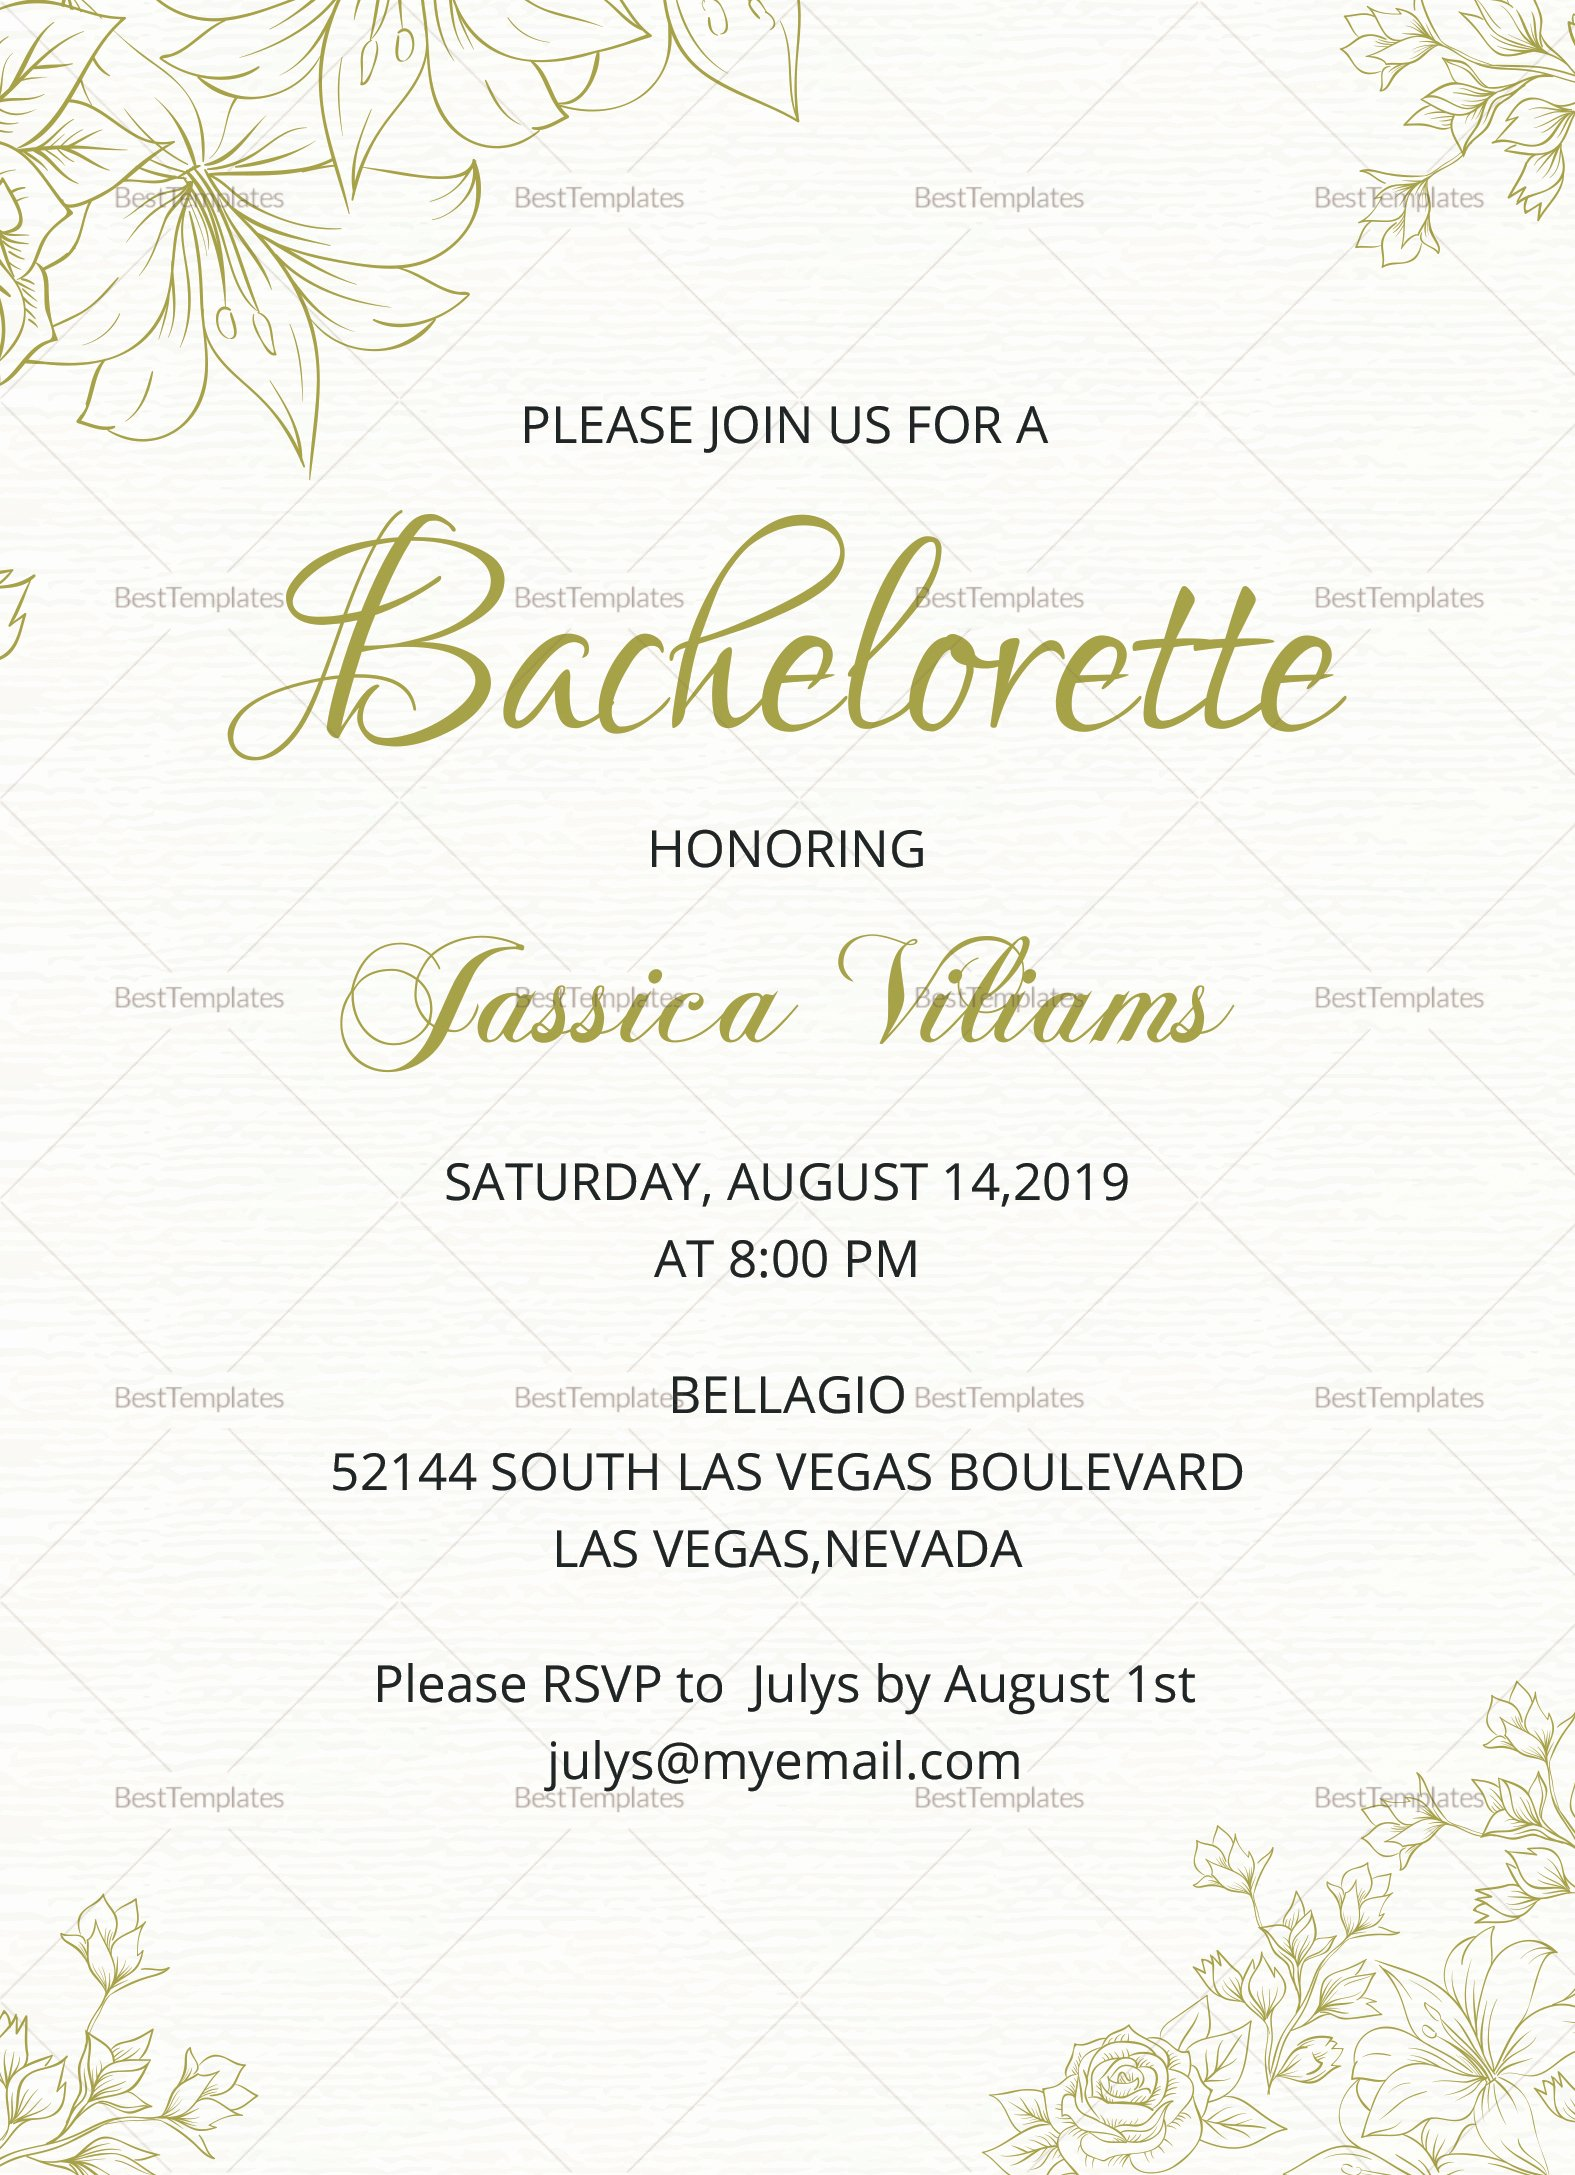 Bachelorette Party Invitation Template Free Awesome Simple Bachelorette Party Invitation Design Template In